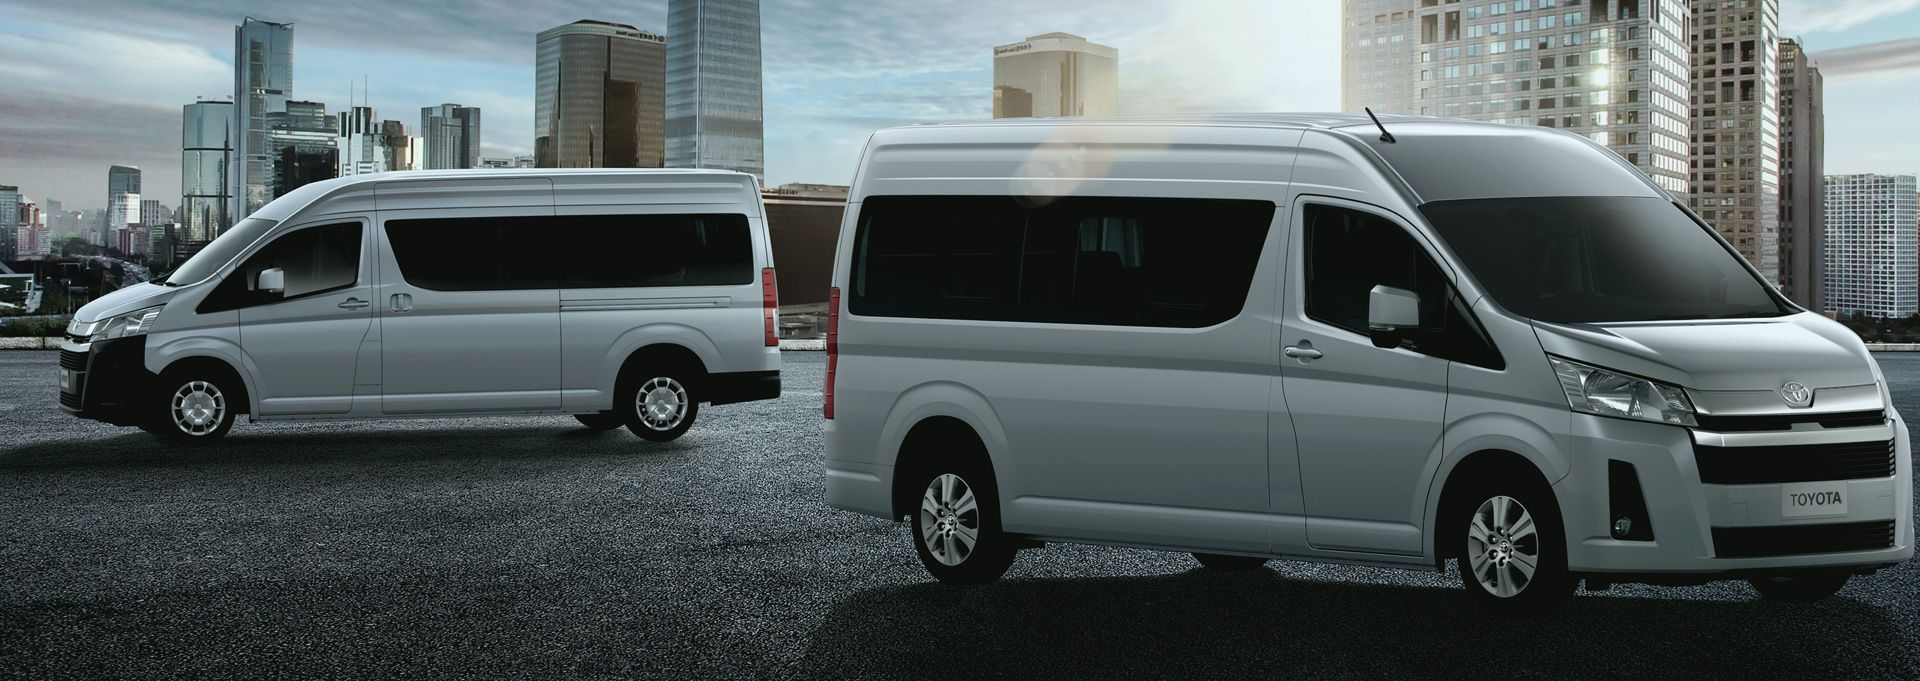 c52a043a81 Toyota s New Hiace Series for Overseas Markets Debuts in Philippines ...